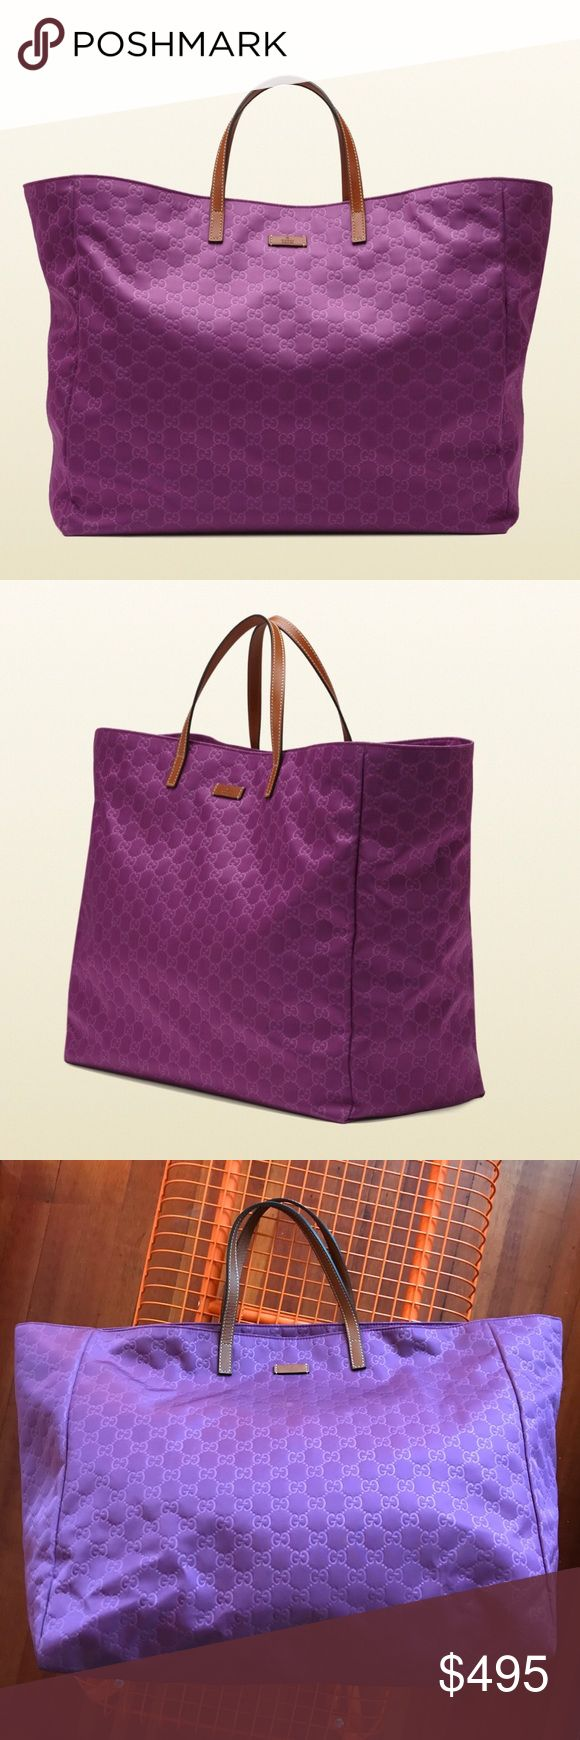 """GUCCI - Monogram Violet Nylon XL Tote Bag Gucci XL Violet Nylon Tote Bag  100% AUTHENTIC GUARANTEED!  Waterproof Nylon. Violet (best captured in the first 2 images from Gucci.com). Leather handles.  Great pre-owned condition, everything is in excellent besides a mark at the bottom left side of the bag (circled in white), everywhere else is perfect. Handles are excellent, interior is excellent.  Measurements: Length - 18"""" Top Length - 25"""" Height - 14.5"""" Width - 8"""" Handle Drop - 5.5""""  No box…"""